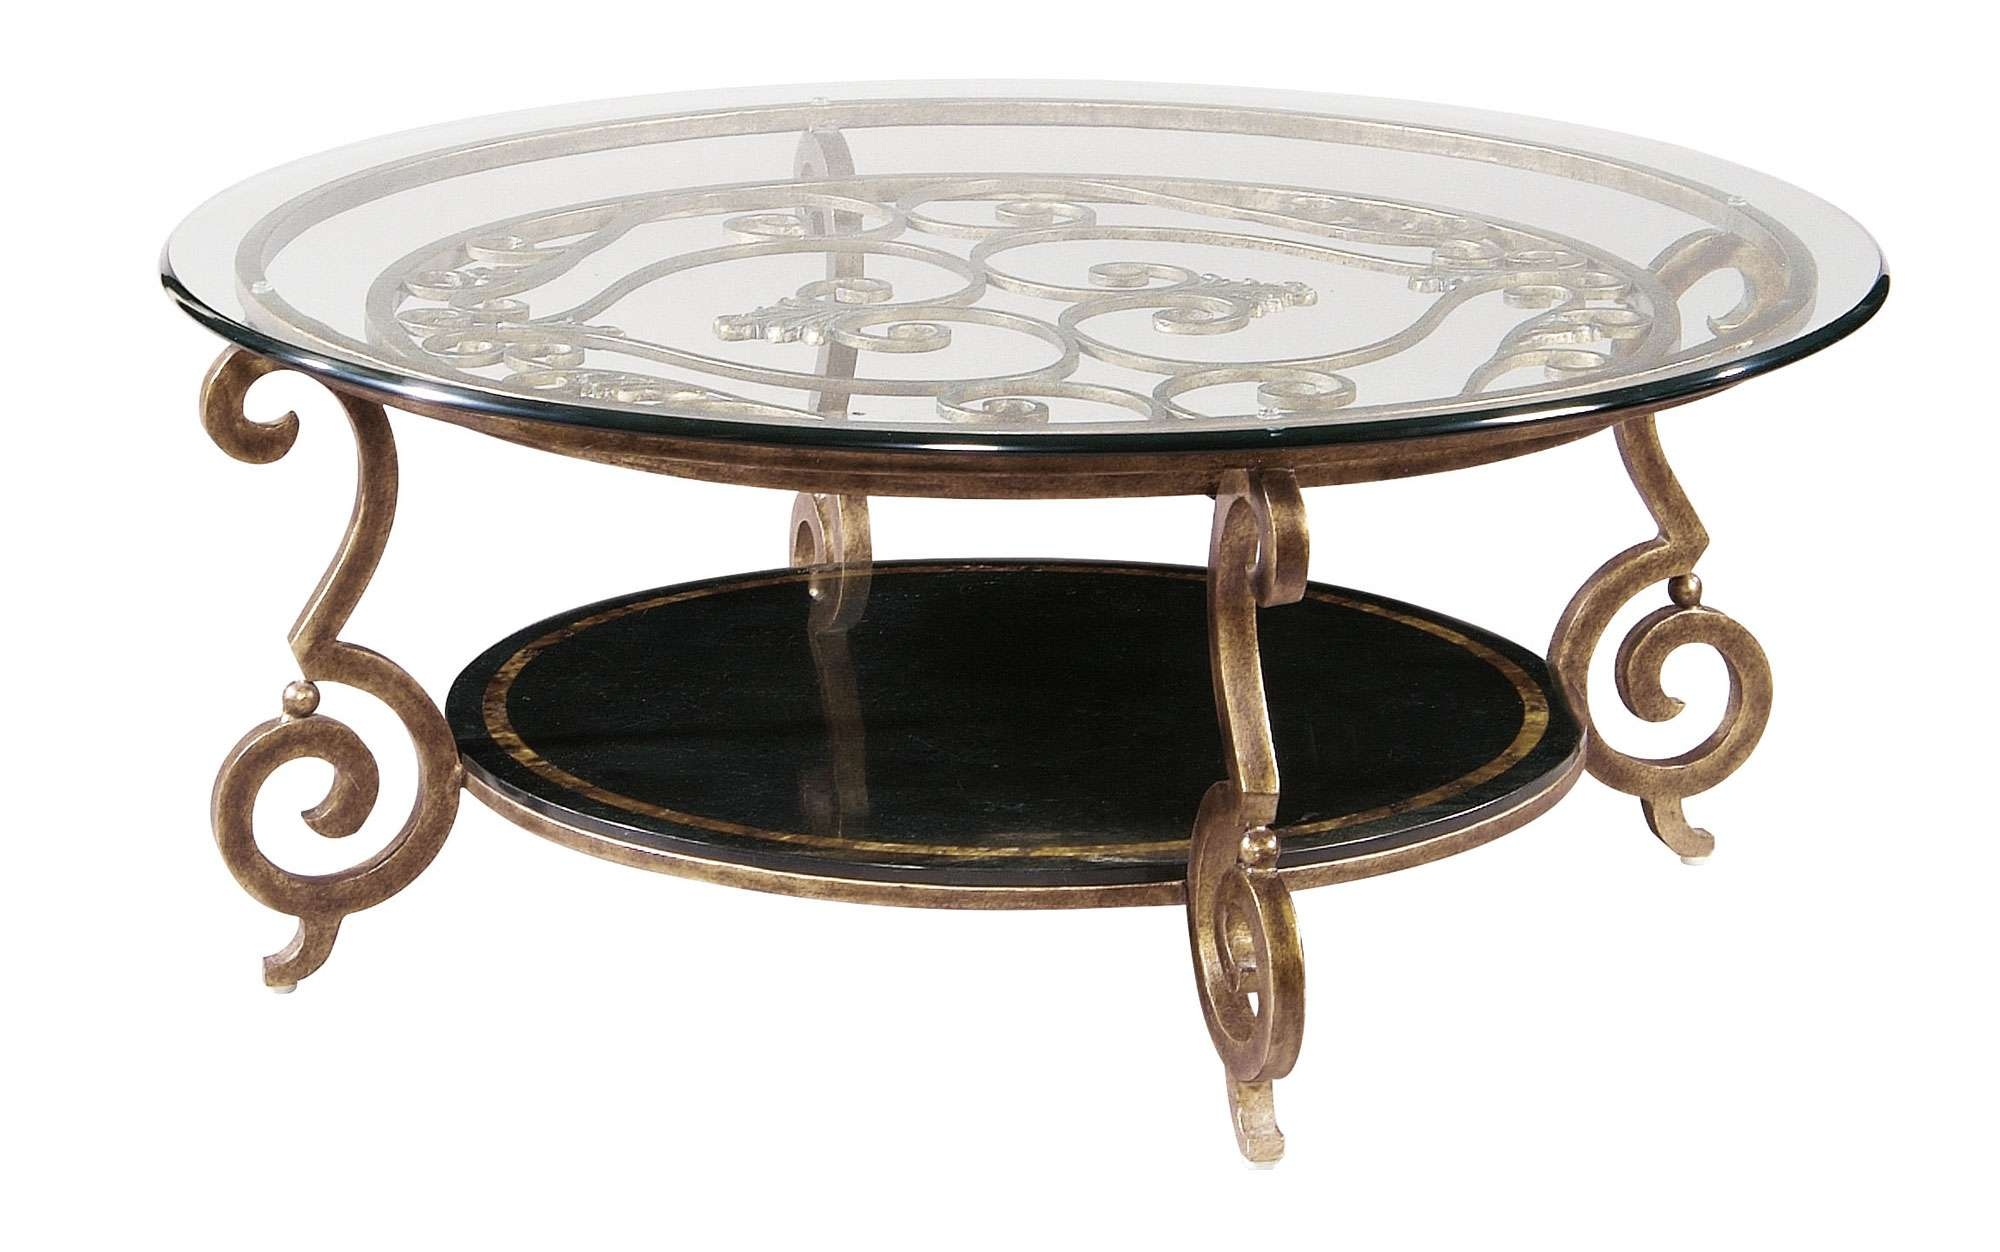 Current Chrome Coffee Table Bases Pertaining To Coffee Table : Wonderful Chrome Coffee Table Legs Wrought Iron (View 10 of 20)